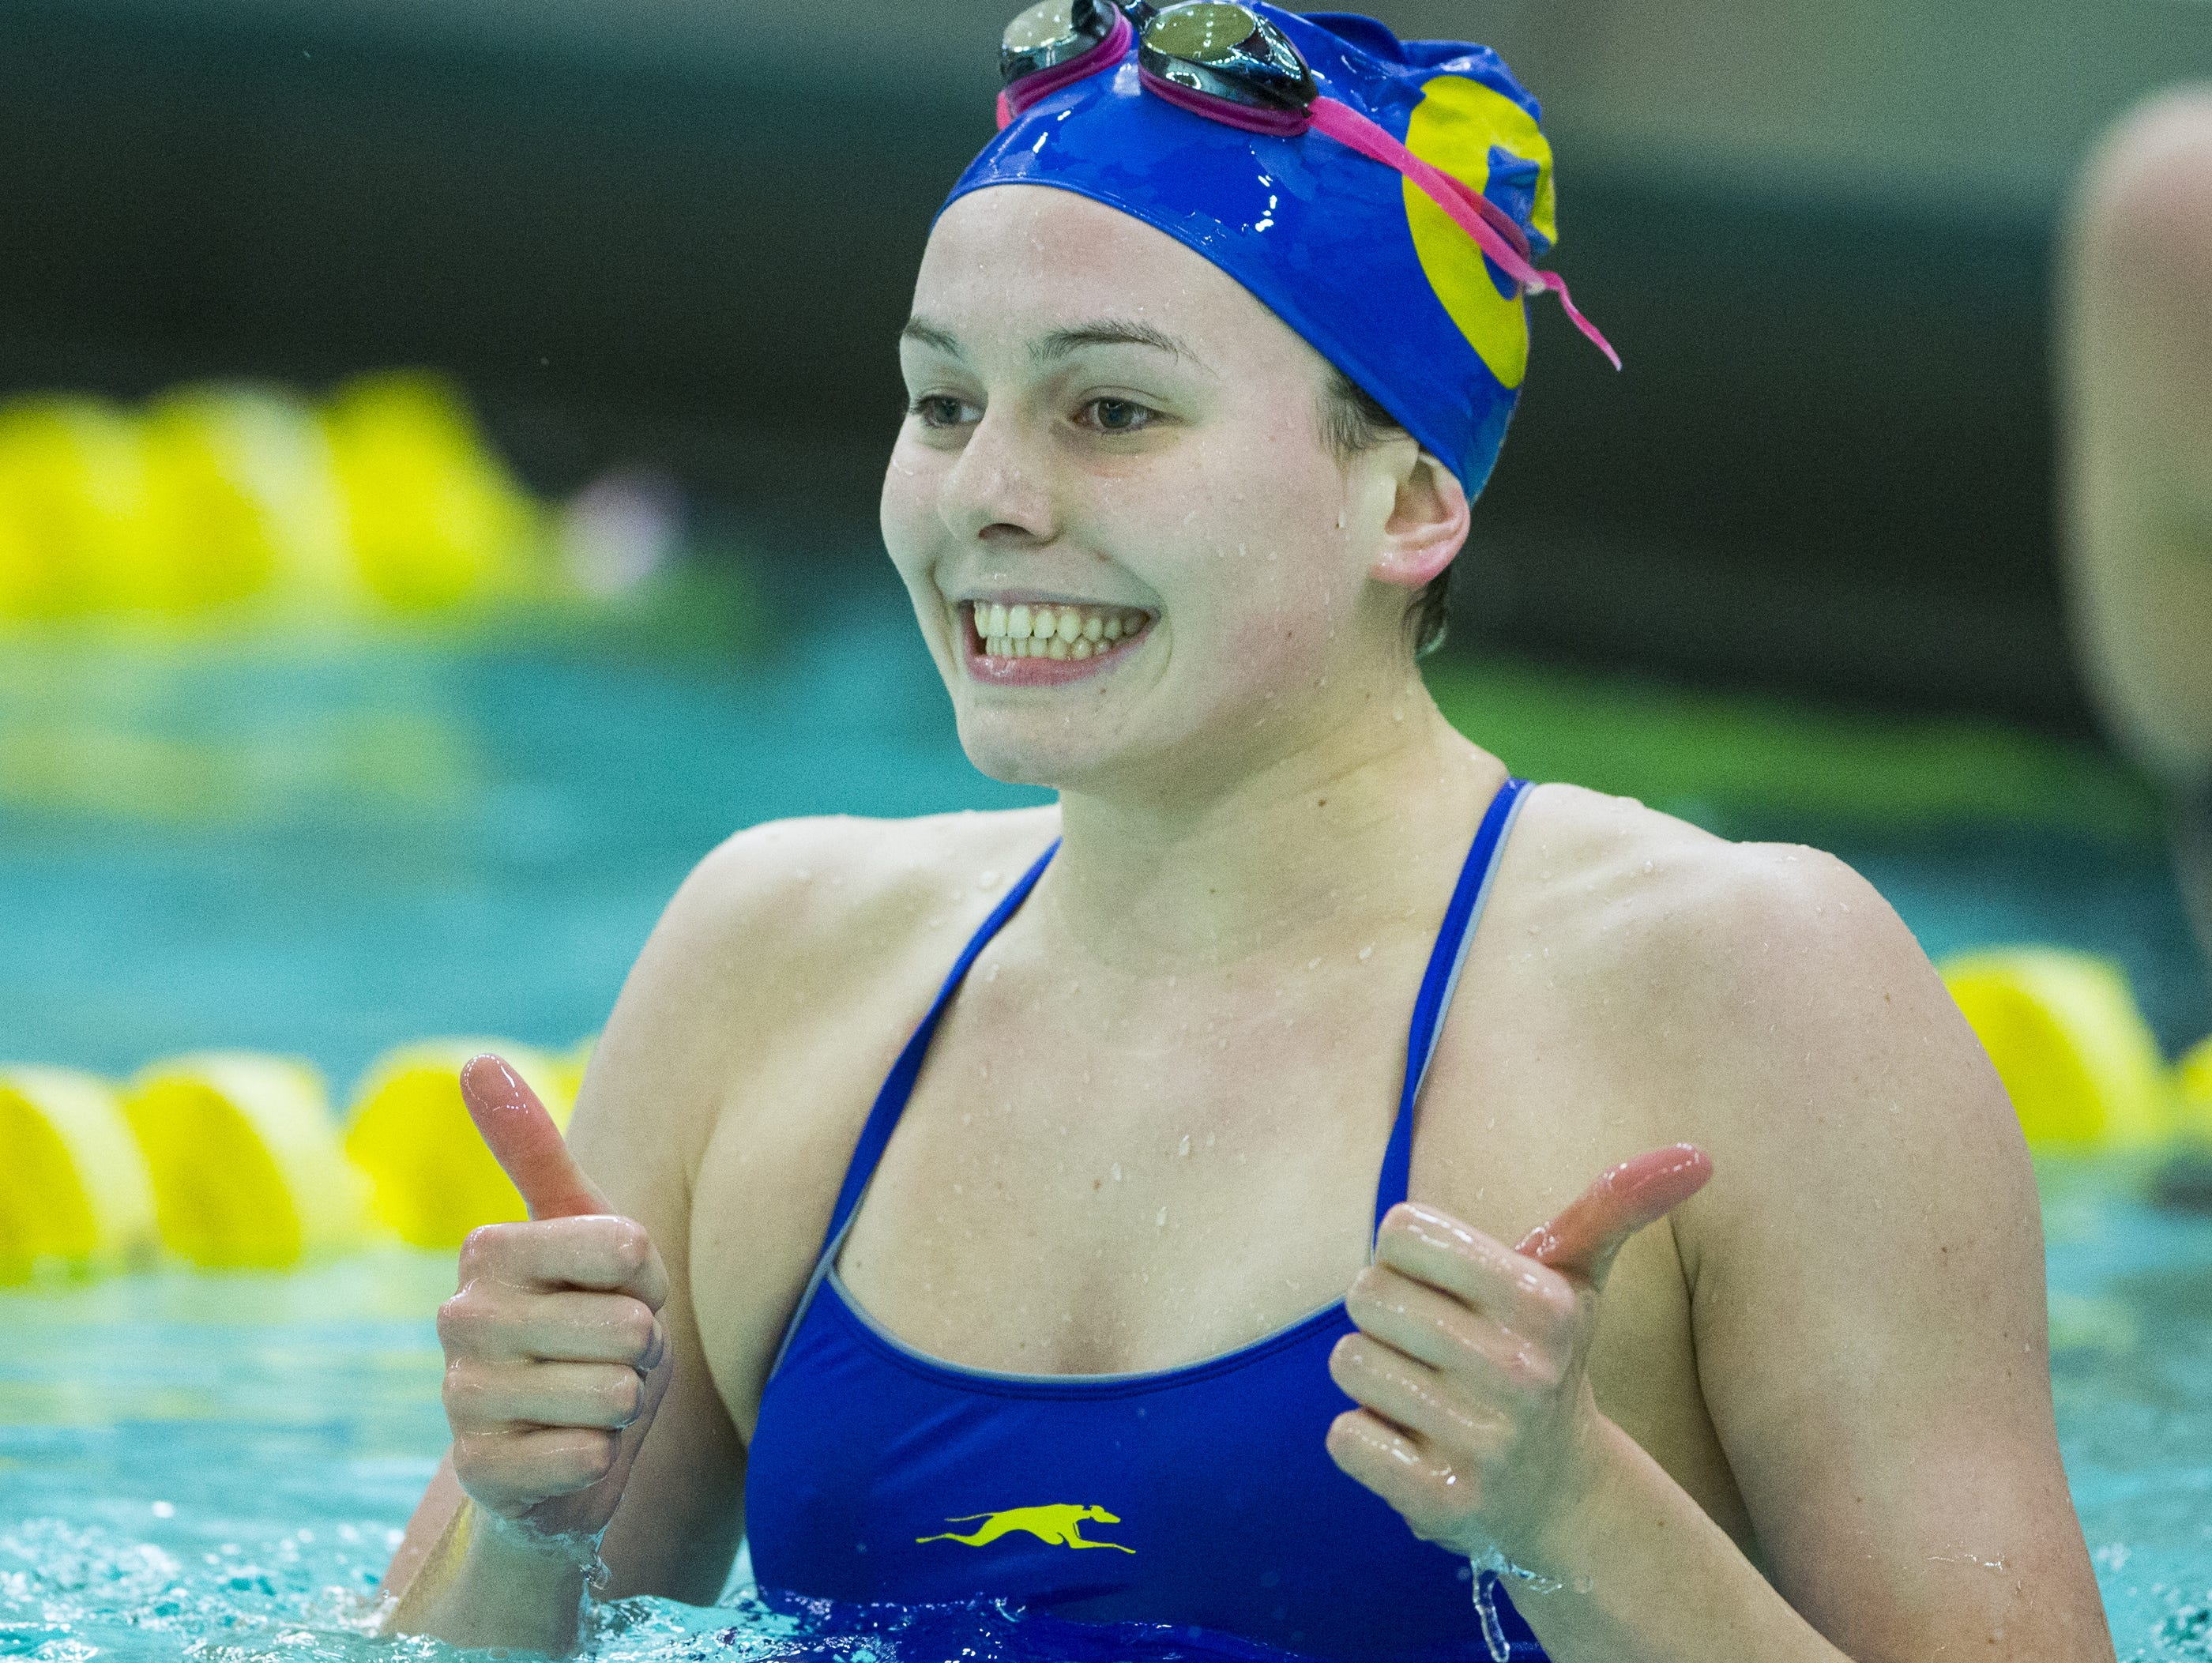 Olympic hopeful Claire Adams has an extra gear when competing, her coach says.